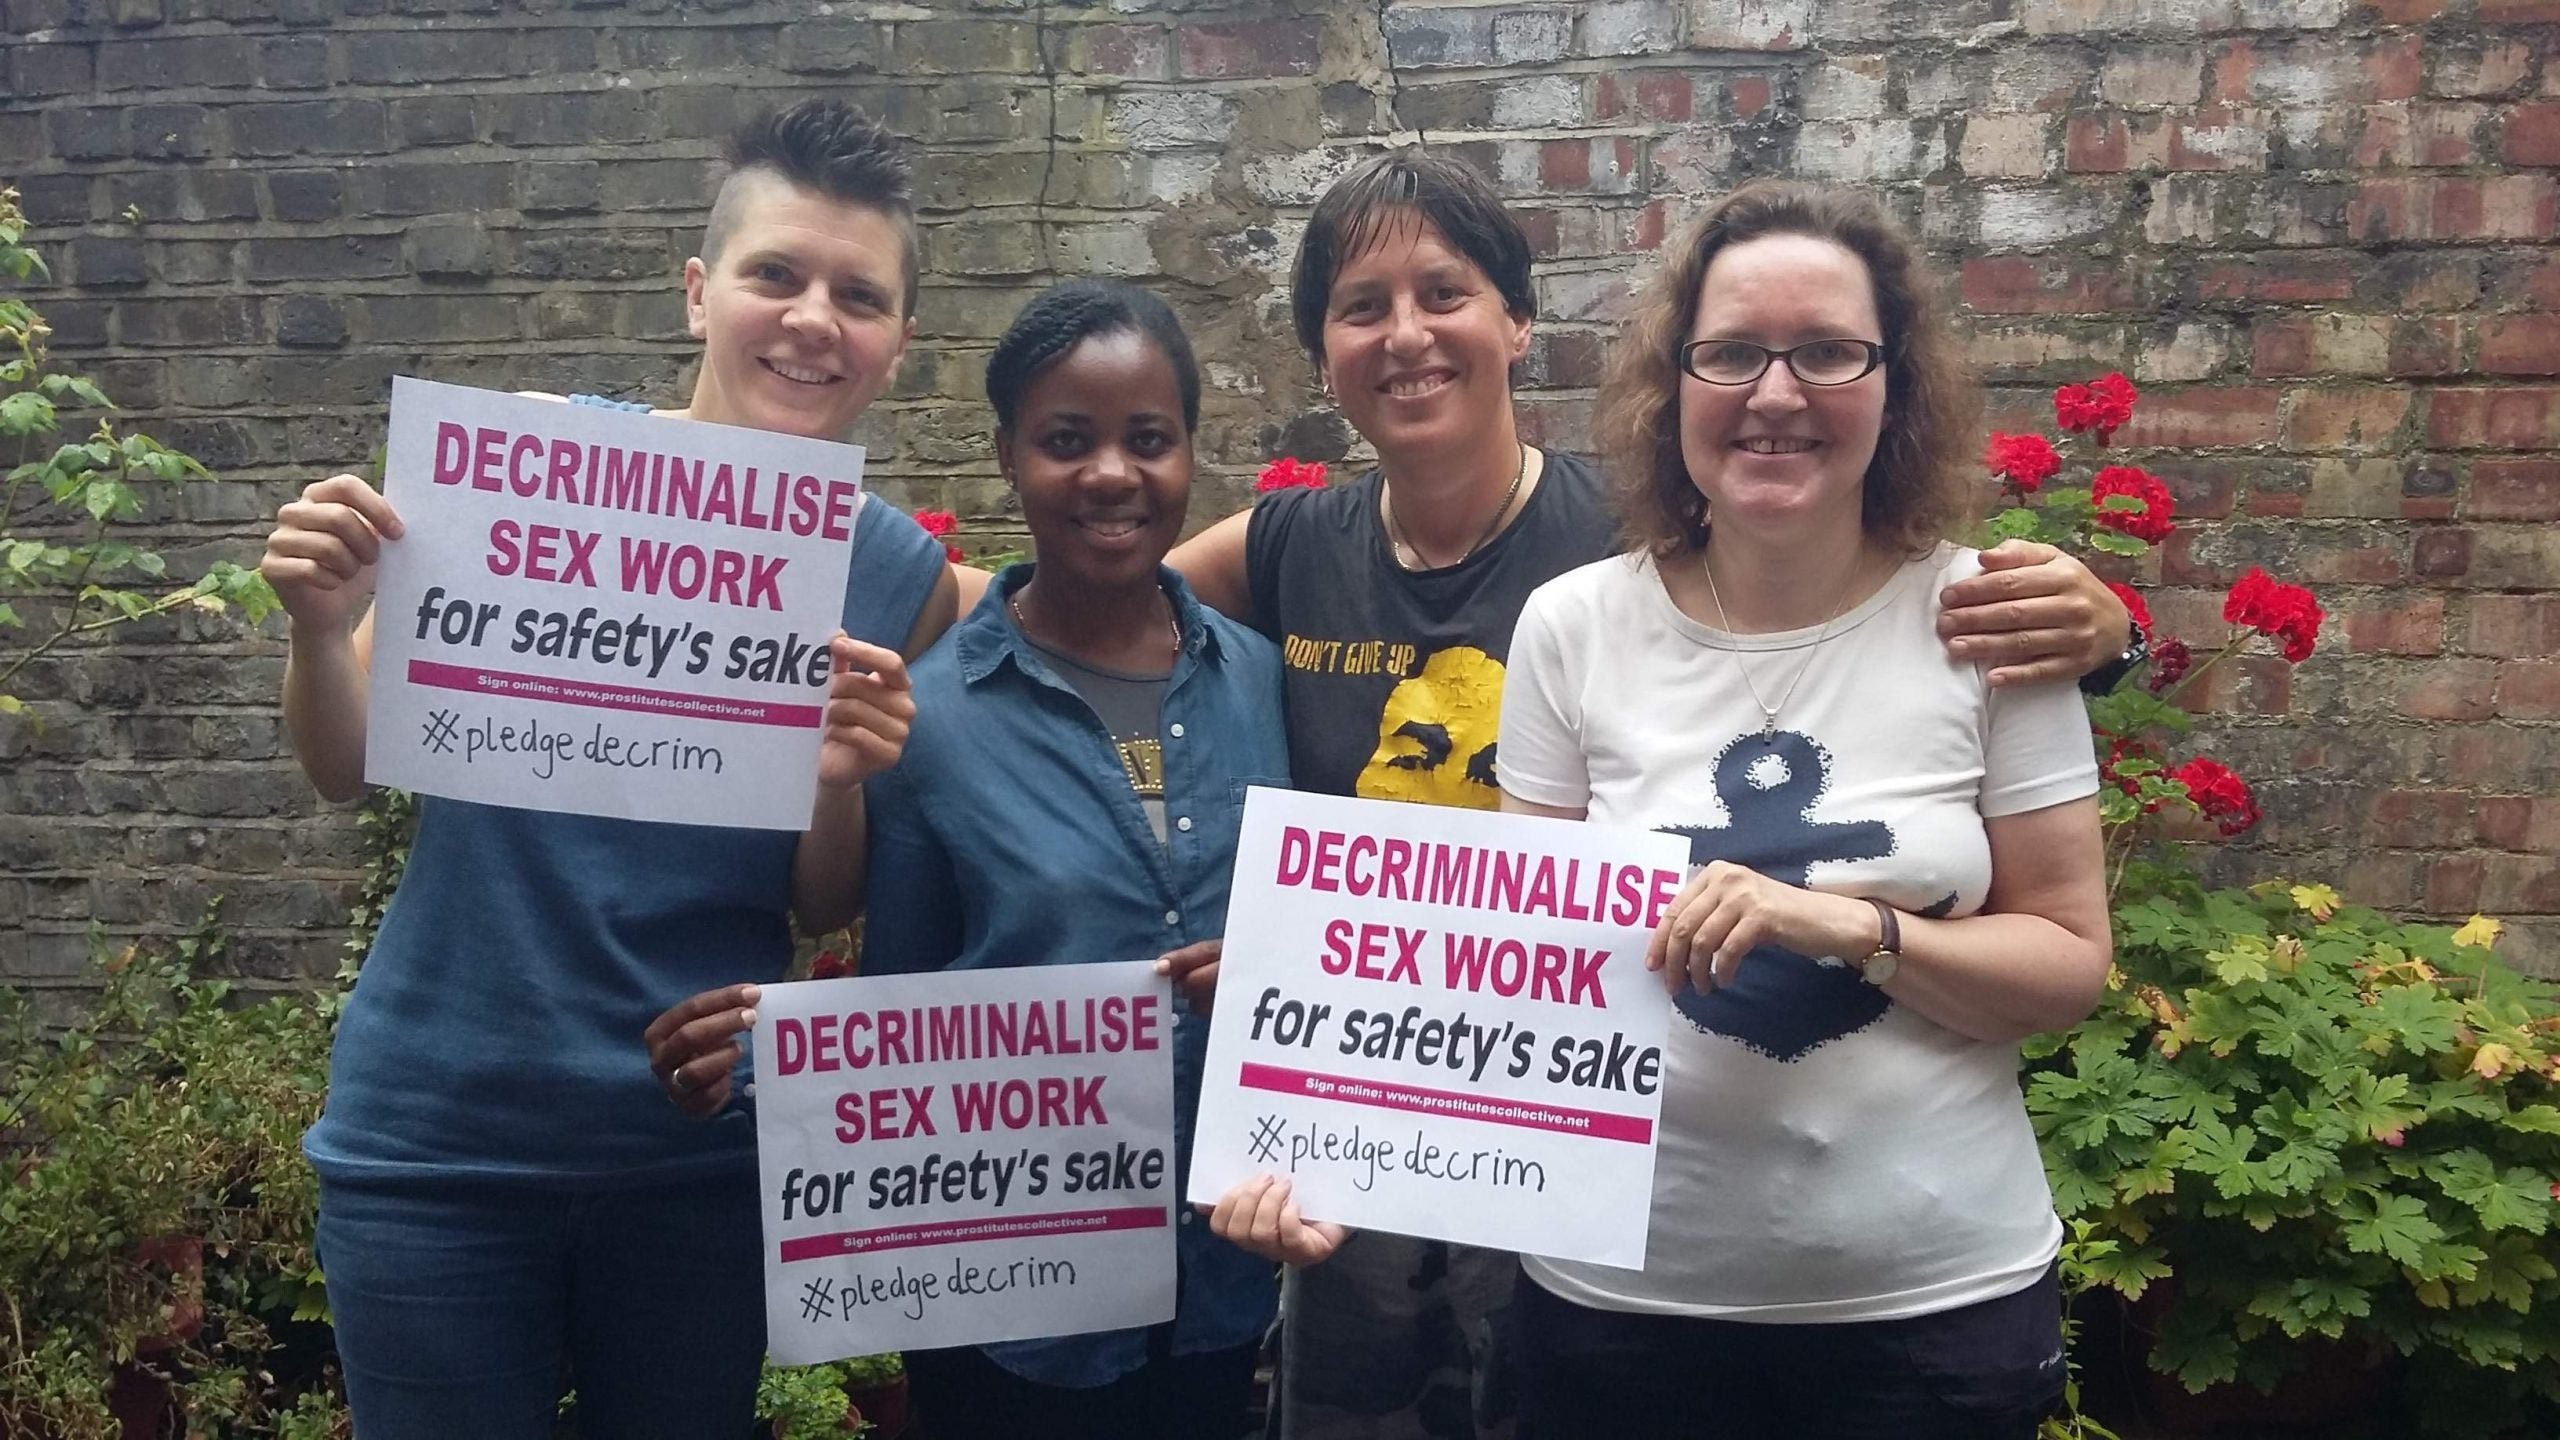 How #pledgedecrim takes sex worker rights to the mainstream